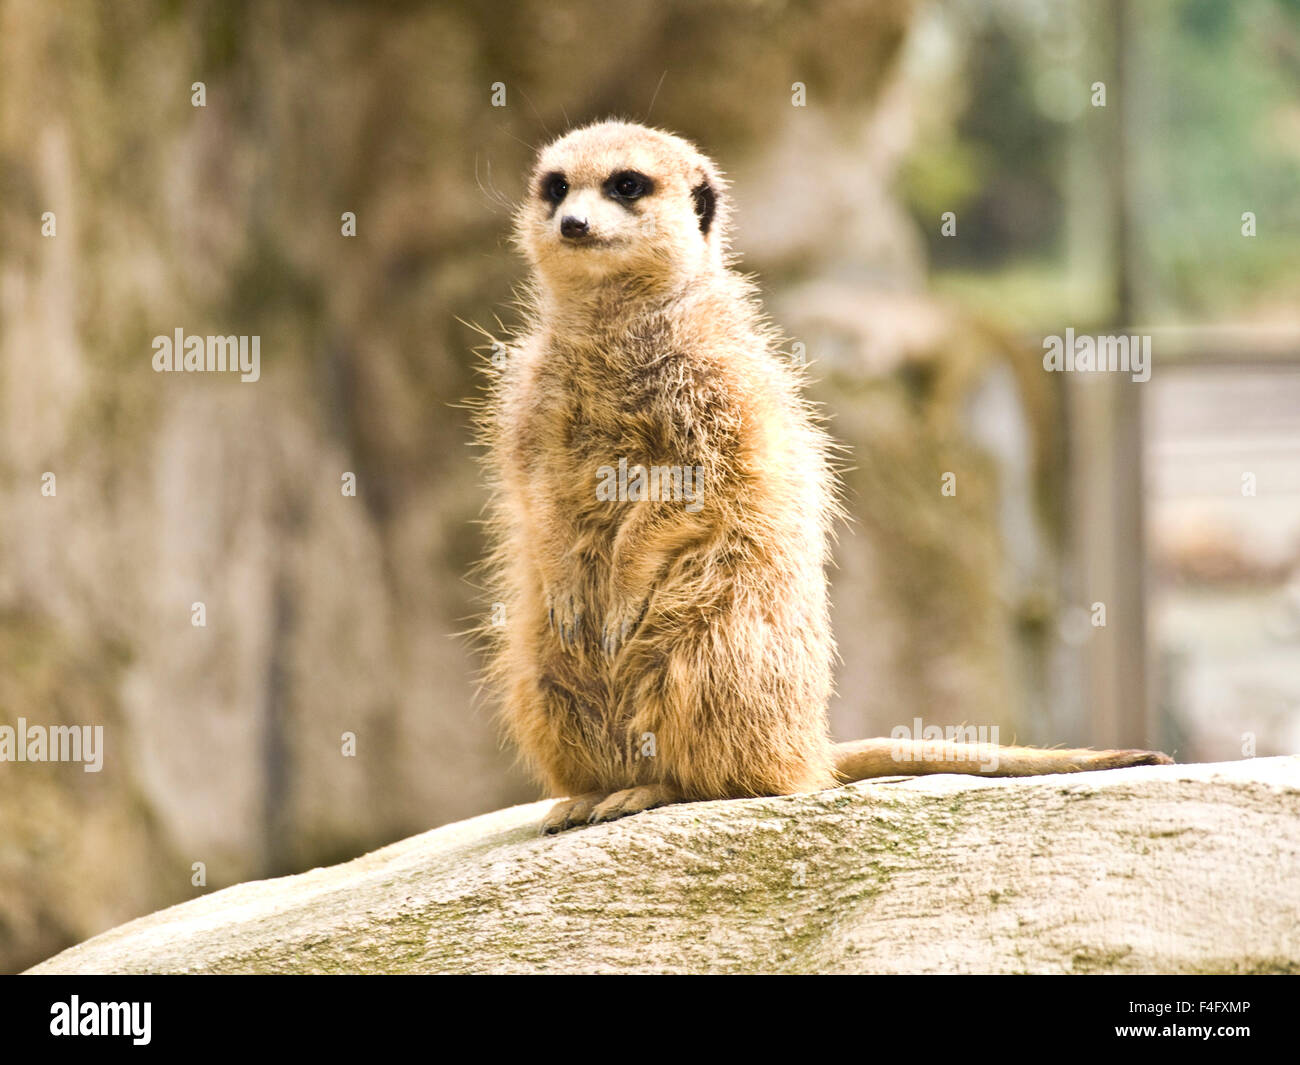 A very interested meerkat - Stock Image